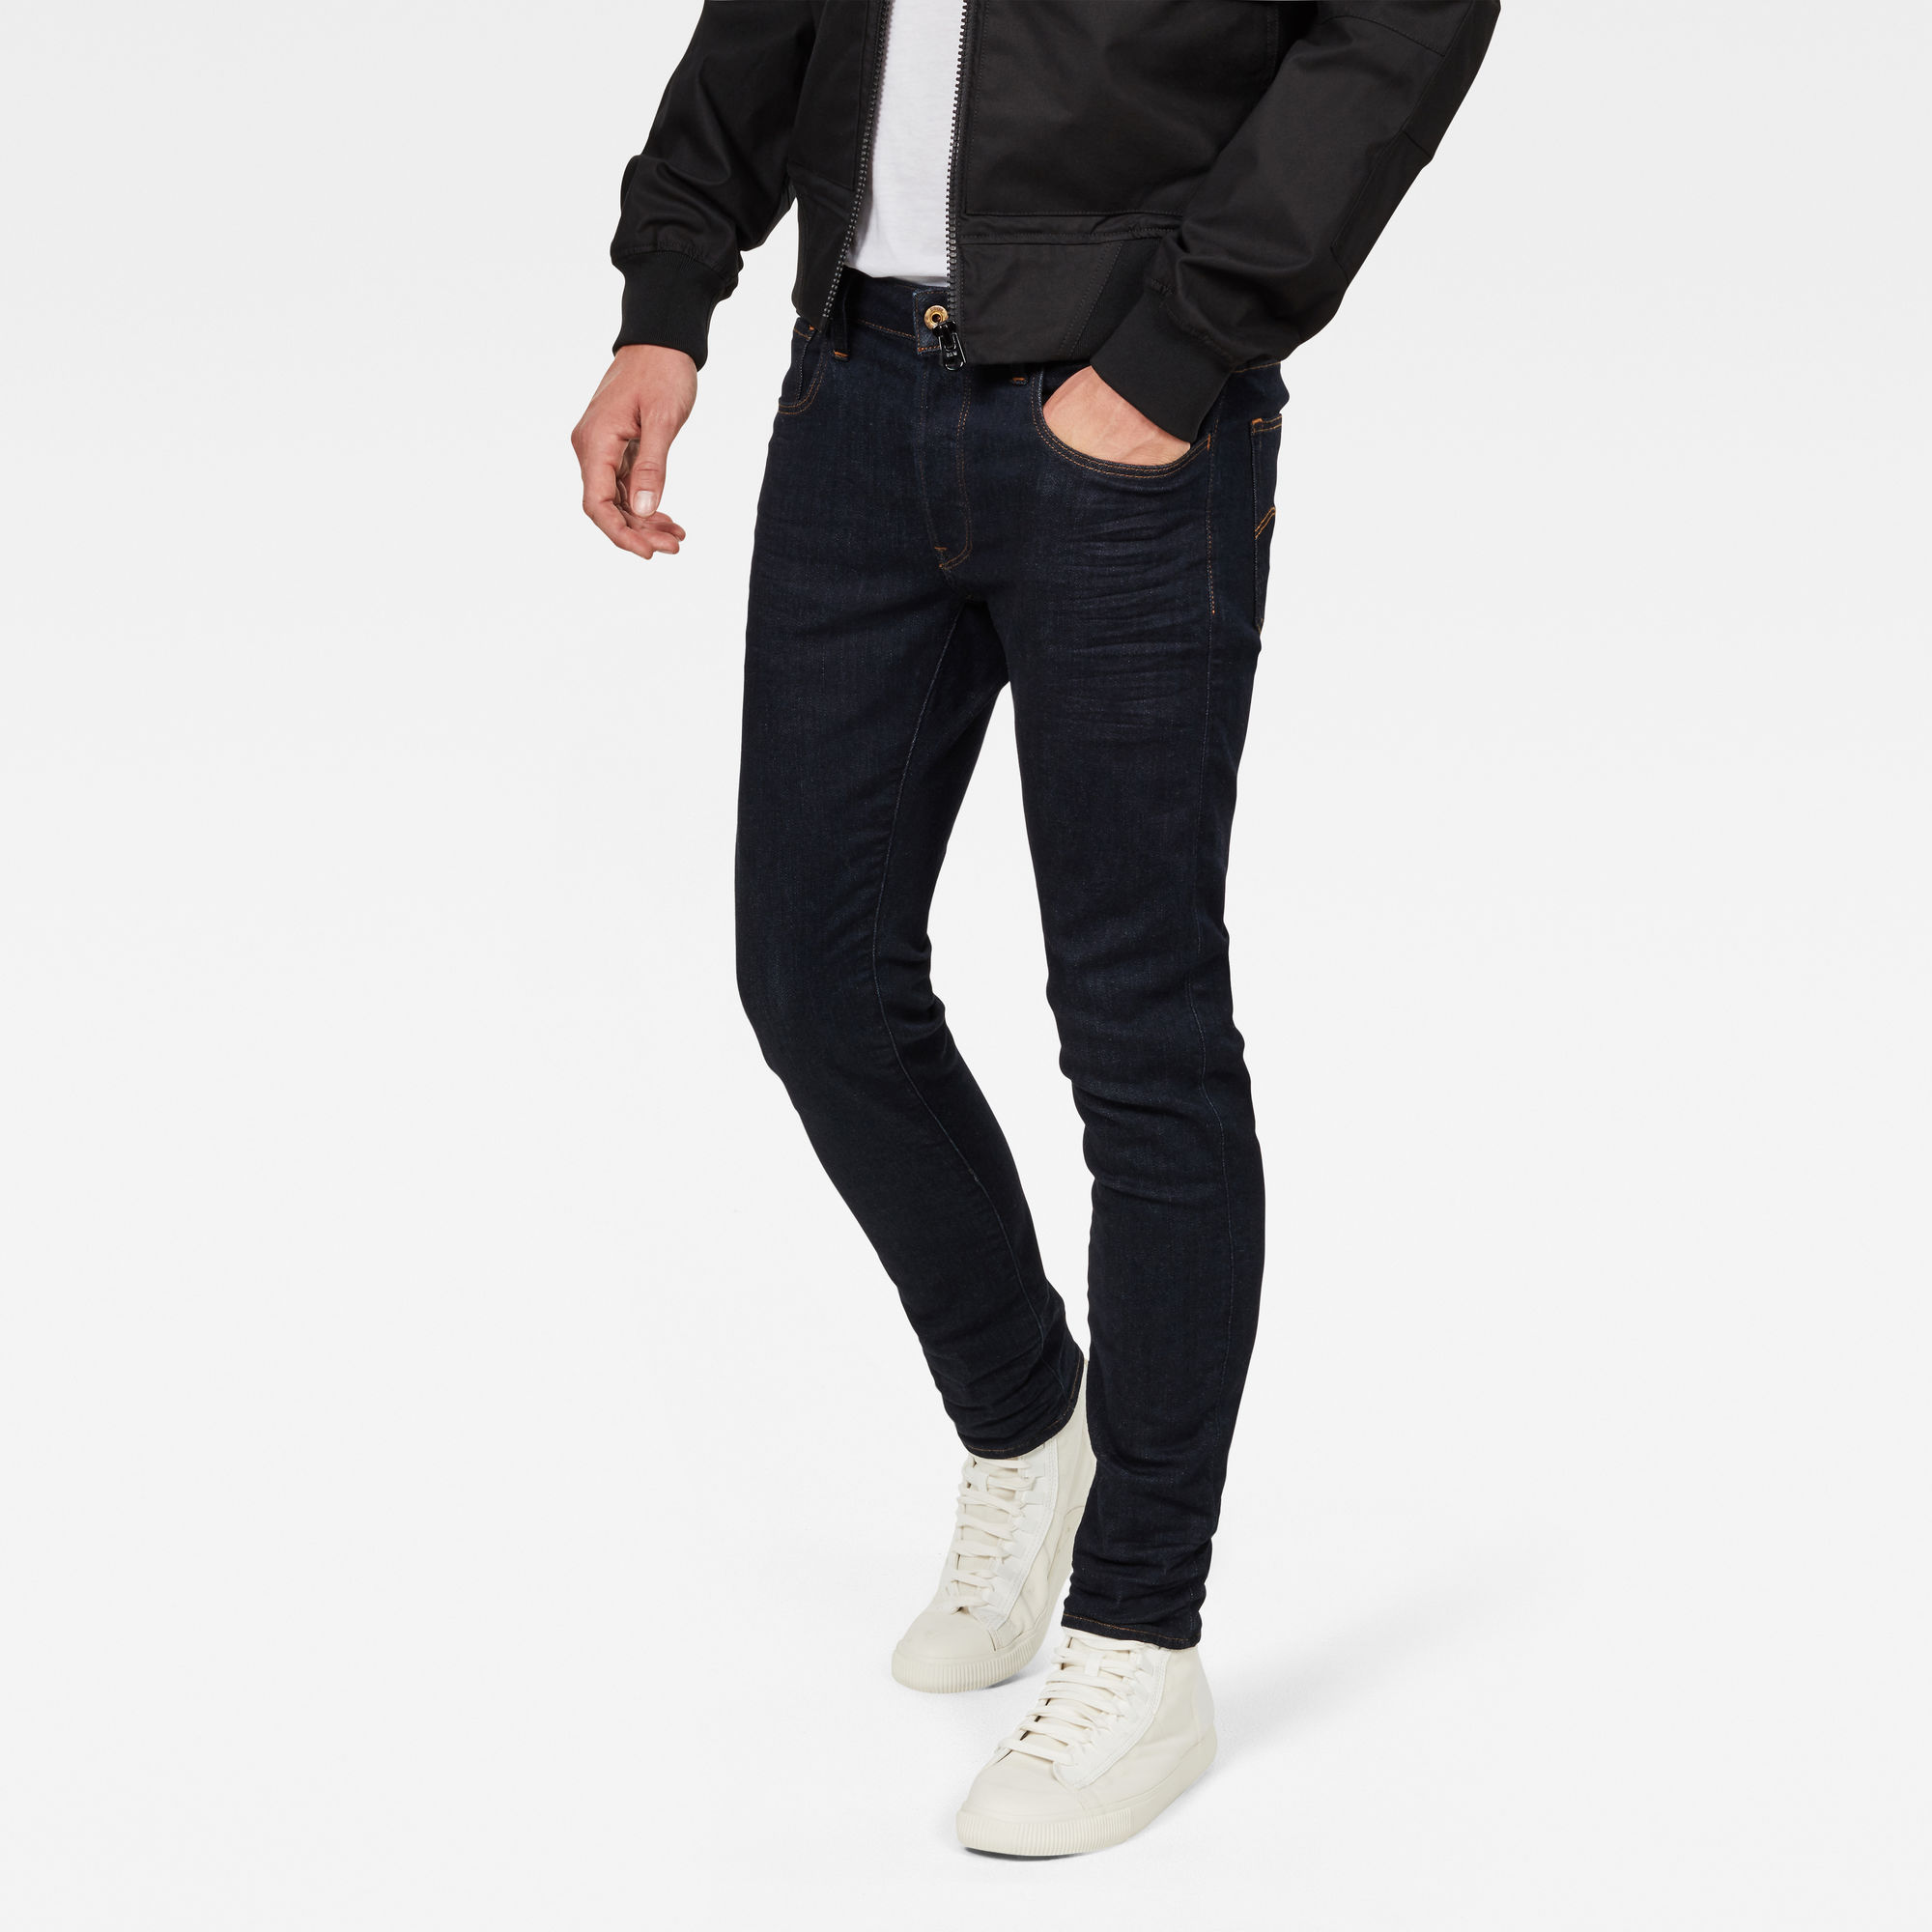 Image of 3301 Deconstructed Slim Jeans